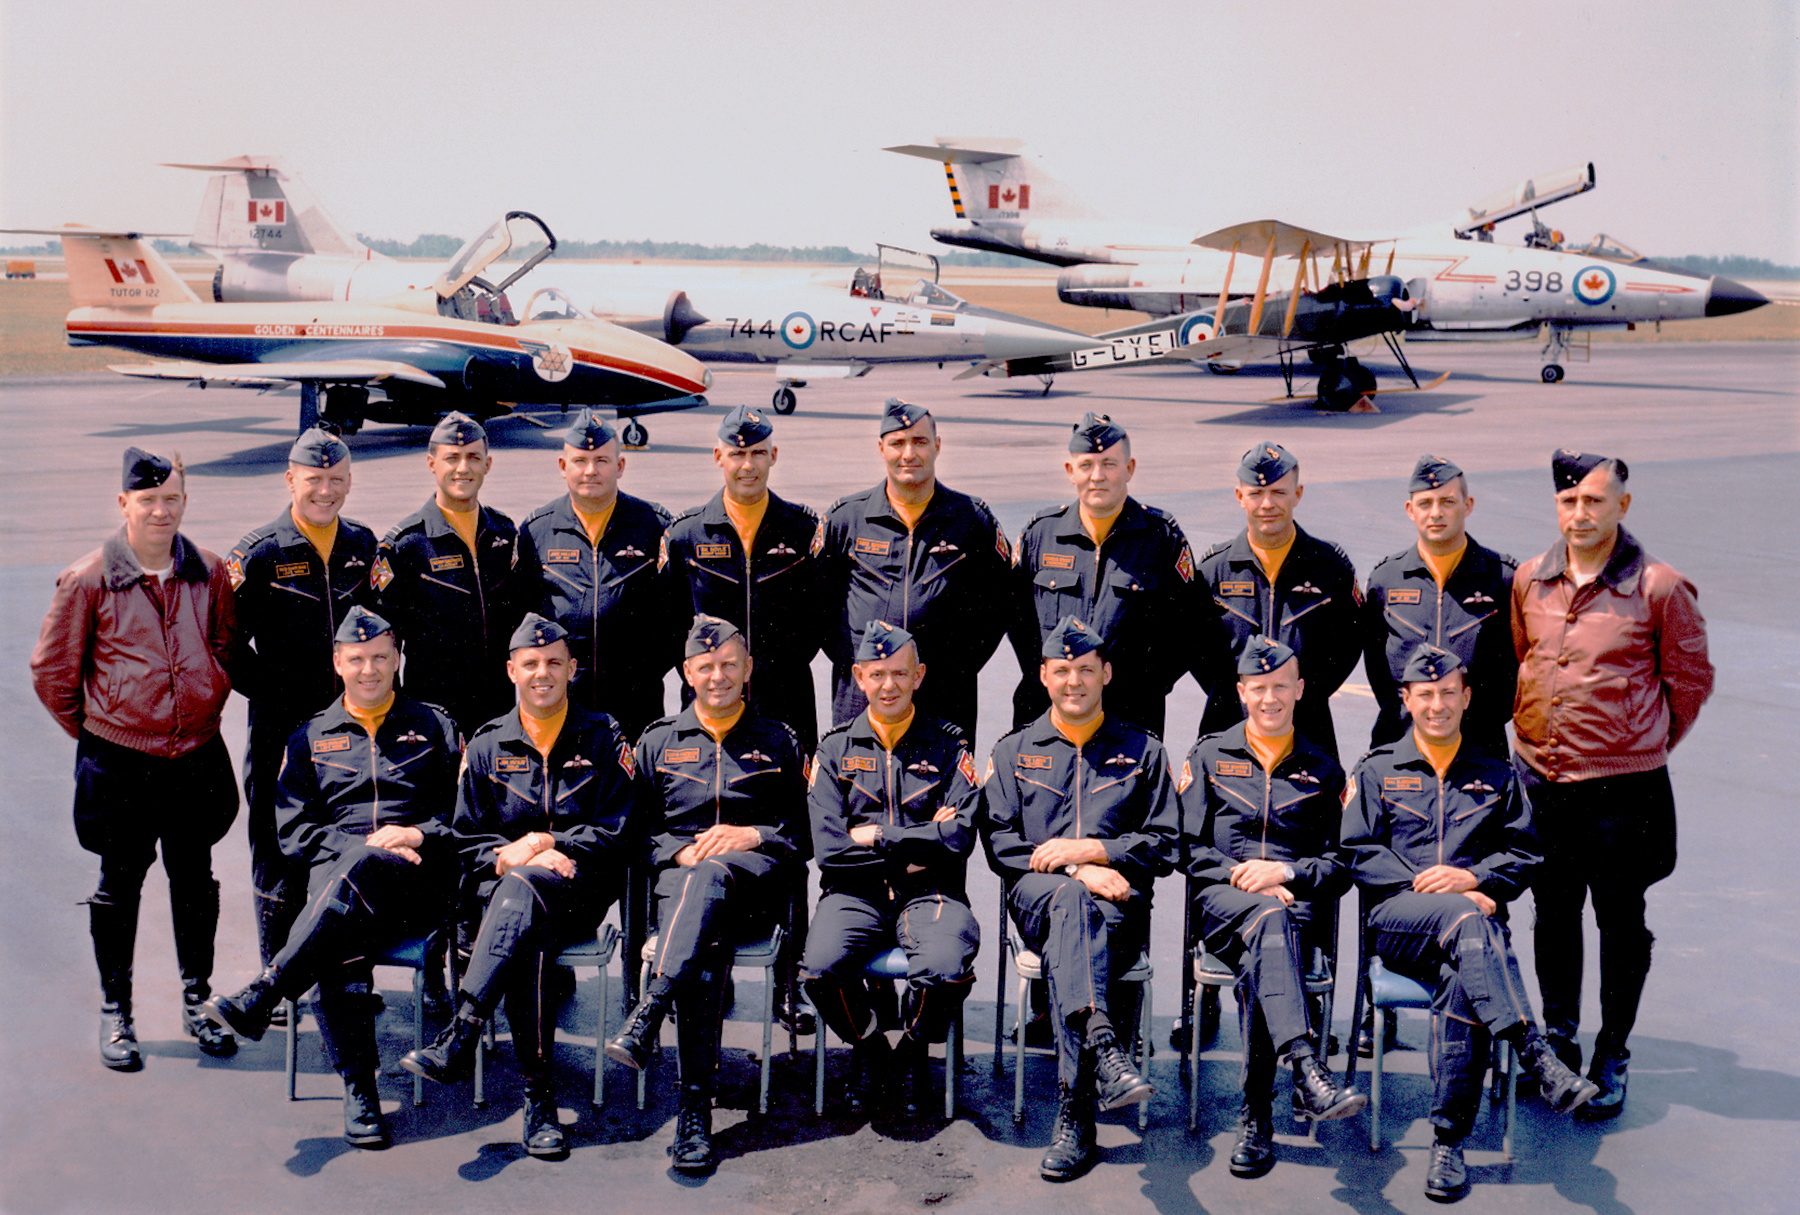 Les officiers des Paladins du Centenaire en 1967. Dans la photo, on voit, de gauche à droite, le capitaine d'aviation John Swallow (aile gauche), le lieutenant d'aviation Jim McKay (en solo à l'opposé), le commandant d'aviation Lloyd Hubbard (officier responsable des services d'information), le commandant d'escadre O.B. Philp (commandant), le commandant d'aviation C.B. Lang (chef d'équipe), le capitaine d'aviation Tom Hinton (aile droite) et le capitaine d'aviation Bill Slaughter (principal soliste). À l'arrière, à partir de la gauche, on voit le lieutenant Gord Brown (Avro 504K), le commandant d'aviation Bob Dagenais (aile extérieure gauche), le capitaine d'aviation Denis Gauthier (commentateur), le capitaine d'aviation Jake Miller (CF-101), le commandant d'aviation B.K. Doyle (aile extérieure droite), le capitaine d'aviation René Serrao (CF-104), le capitaine d'aviation Charlie Grant (officier d'ingénierie), le commandant aviation Russ Bennett, le capitaine d'aviation Rob McGsey (navigateur CF-101) et le capitaine d'aviation George Greff (Avro 504K). Sont absents le capitaine d'aviation Jack Waters (le Red Knight) et son remplaçant, le lieutenant d'aviation Rod Ellis. À l'arrière-plan se trouvent, à partir de gauche, un Tutor CT-114, un CF-104 Starfighter, un Avro 504K et un Voodoo CF-101. PHOTO : MDN, caporal Bob Imre